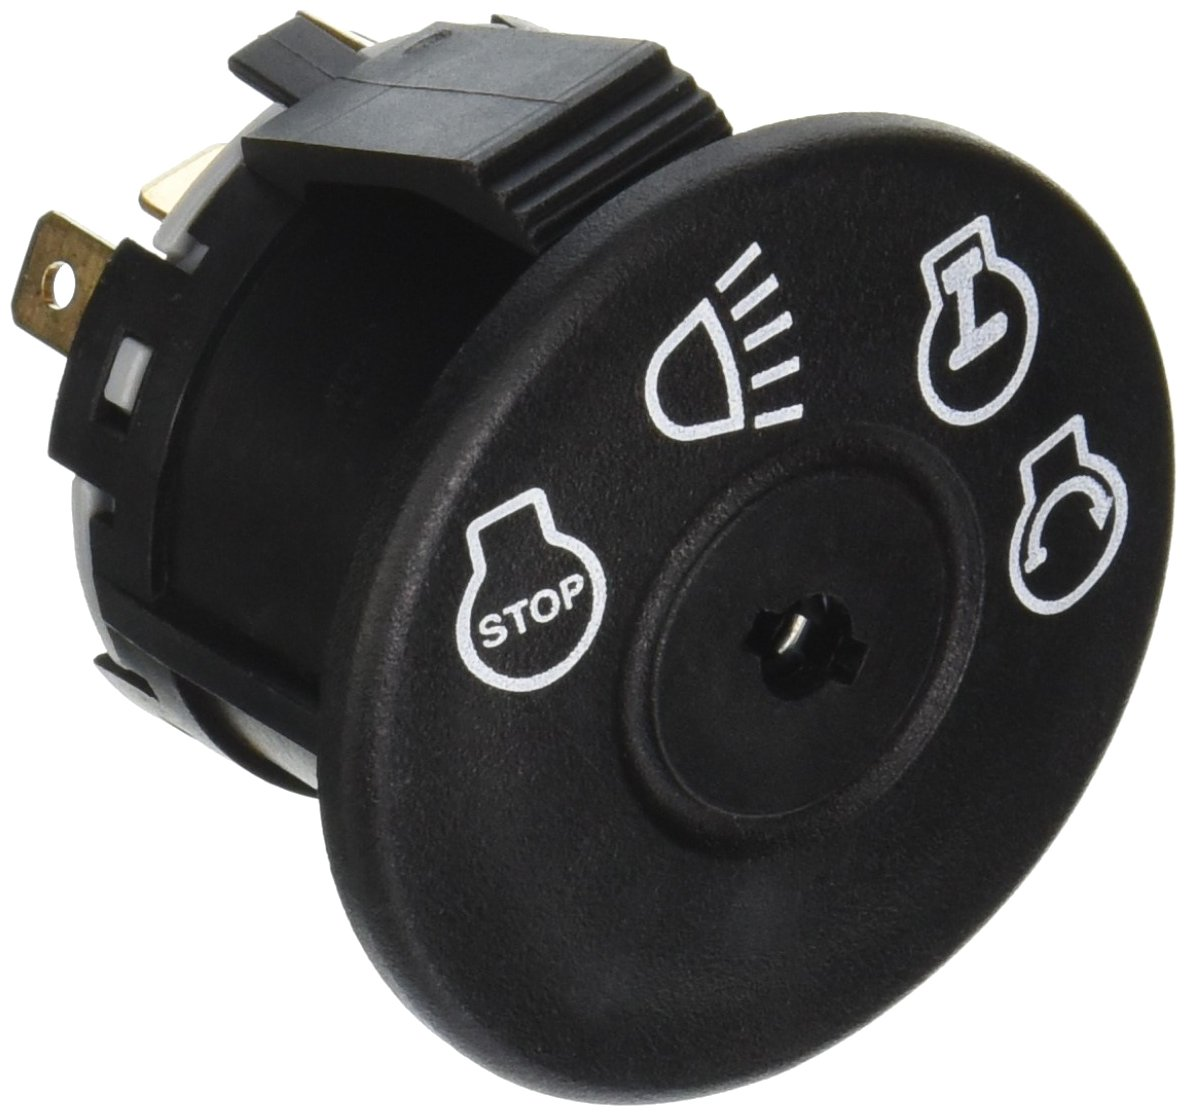 Stens 430-445 Starter Switch Replaces MTD 925-1741 Murray 94762MA AYP 175566 175442 John Deere GY20074 Husqvarna 532 17 55-66 Murray 94762 AYP 163968 MTD 725-1741 by Stens